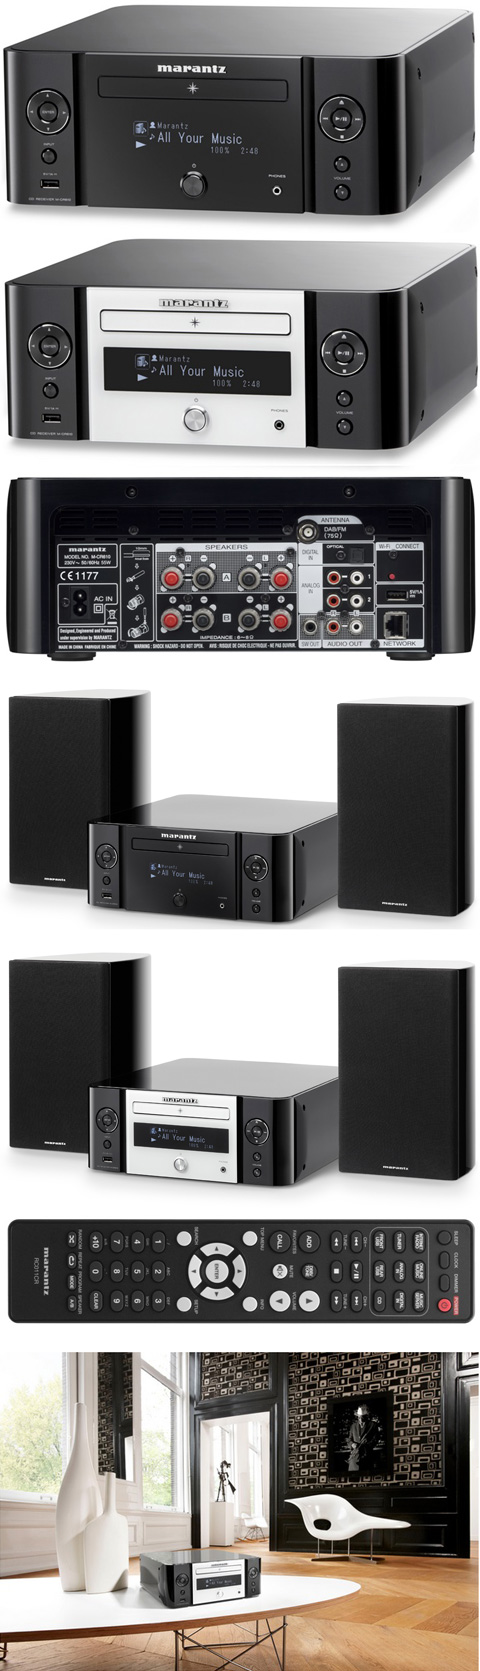 Медиаплеер сетевой / CD / FM: Marantz Melody Media - M-CR 610 Black